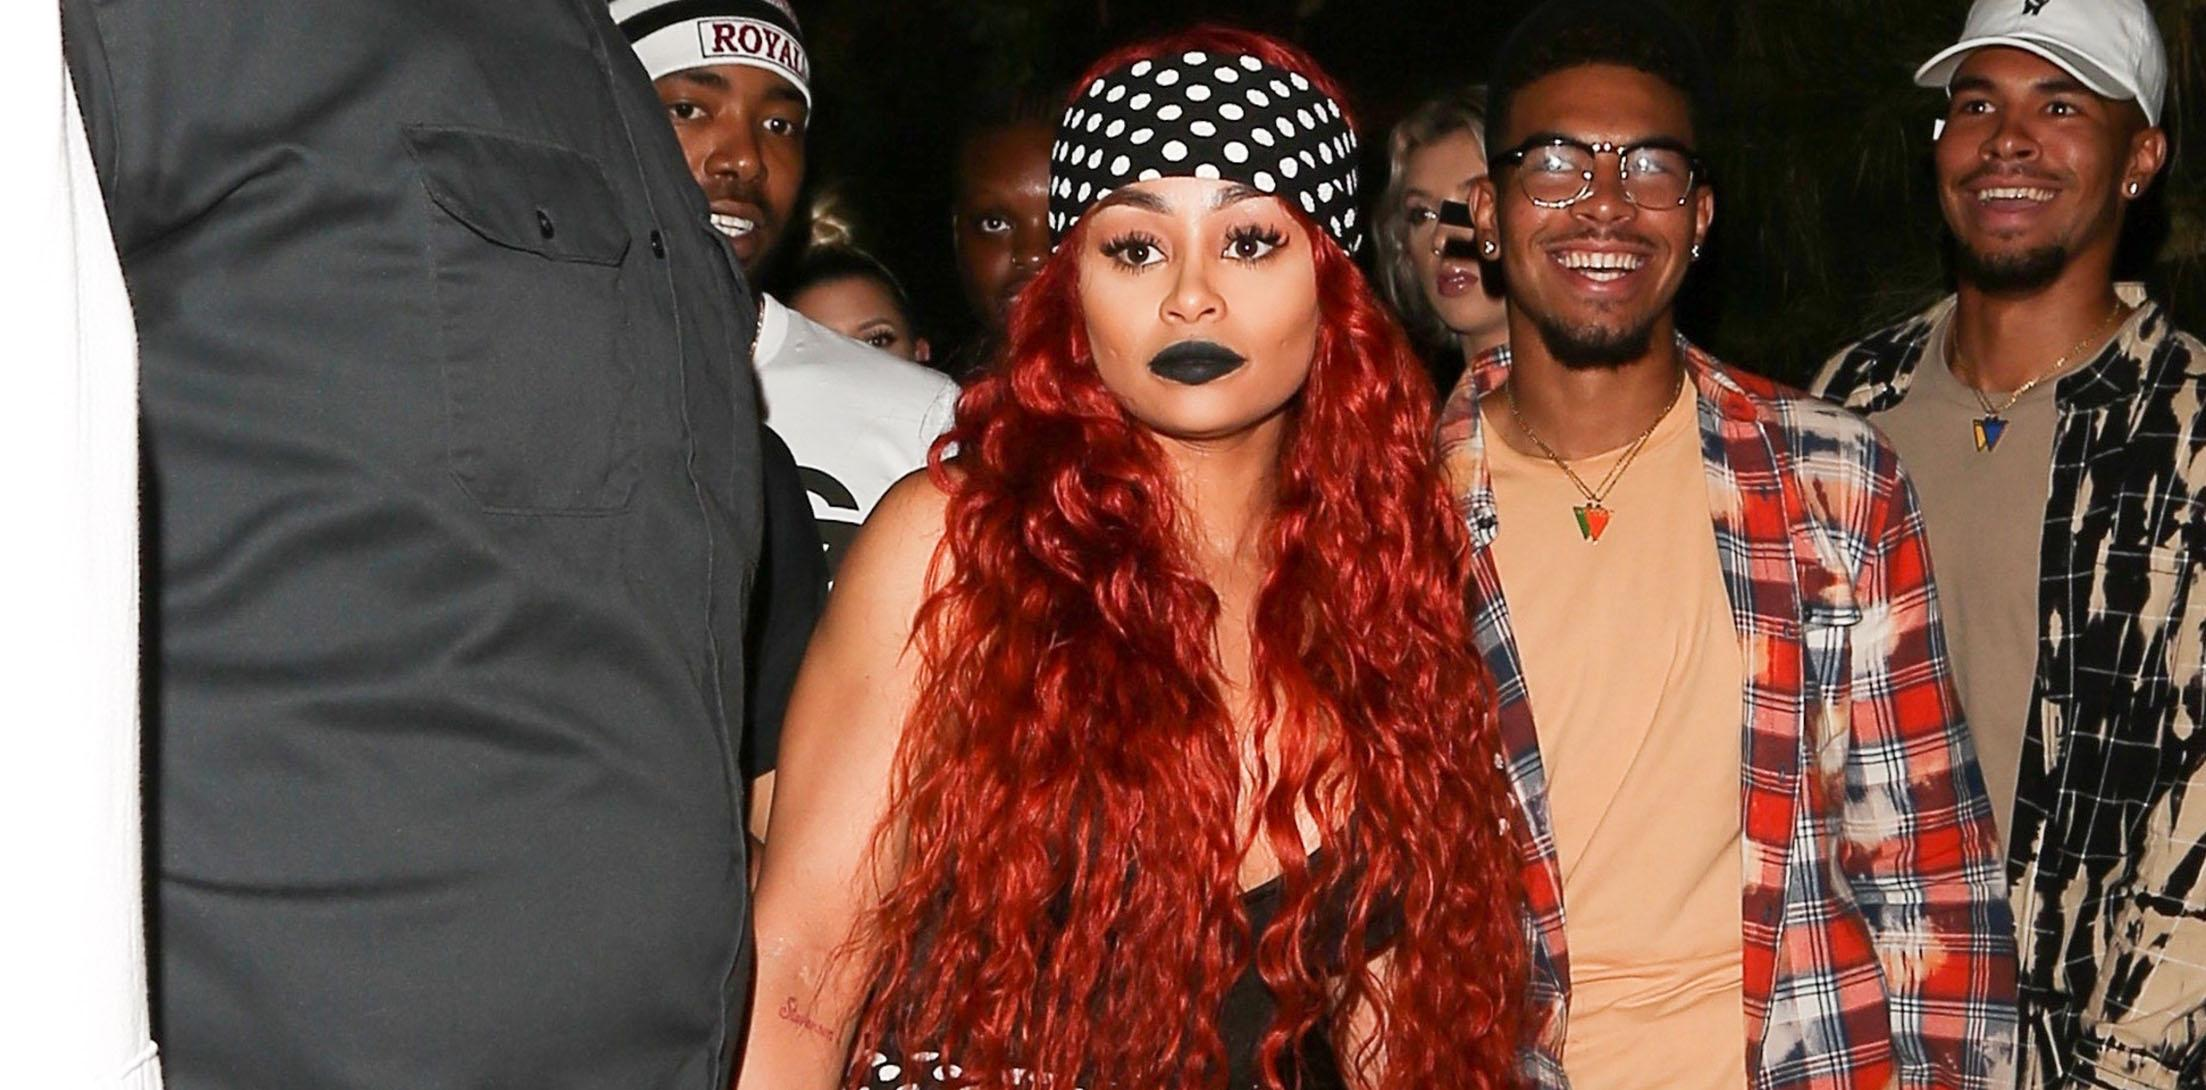 Blac Chyna is hard to miss in all polka dots as she sports red hair